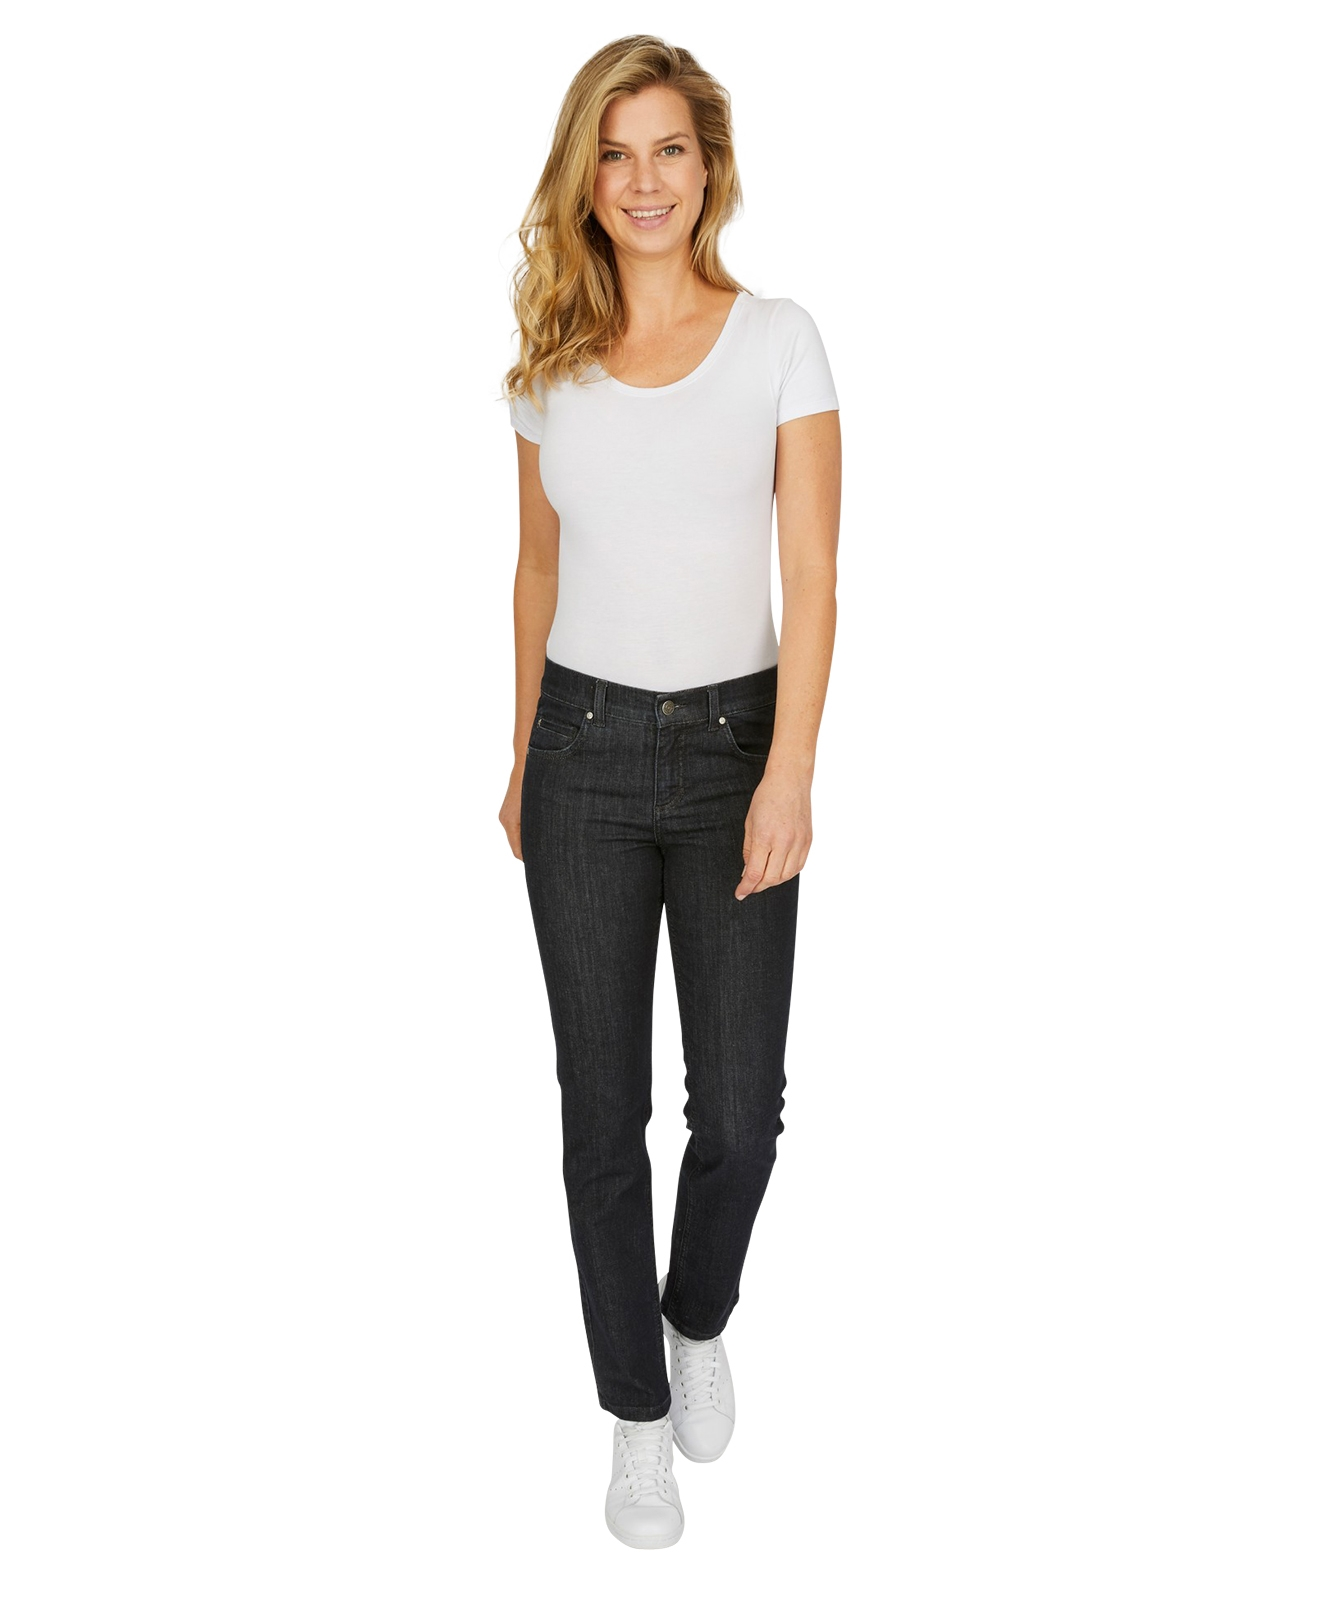 Hosen - Angels Straight Leg Jeans Cici in Rinse Night Blue  - Onlineshop Jeans Meile